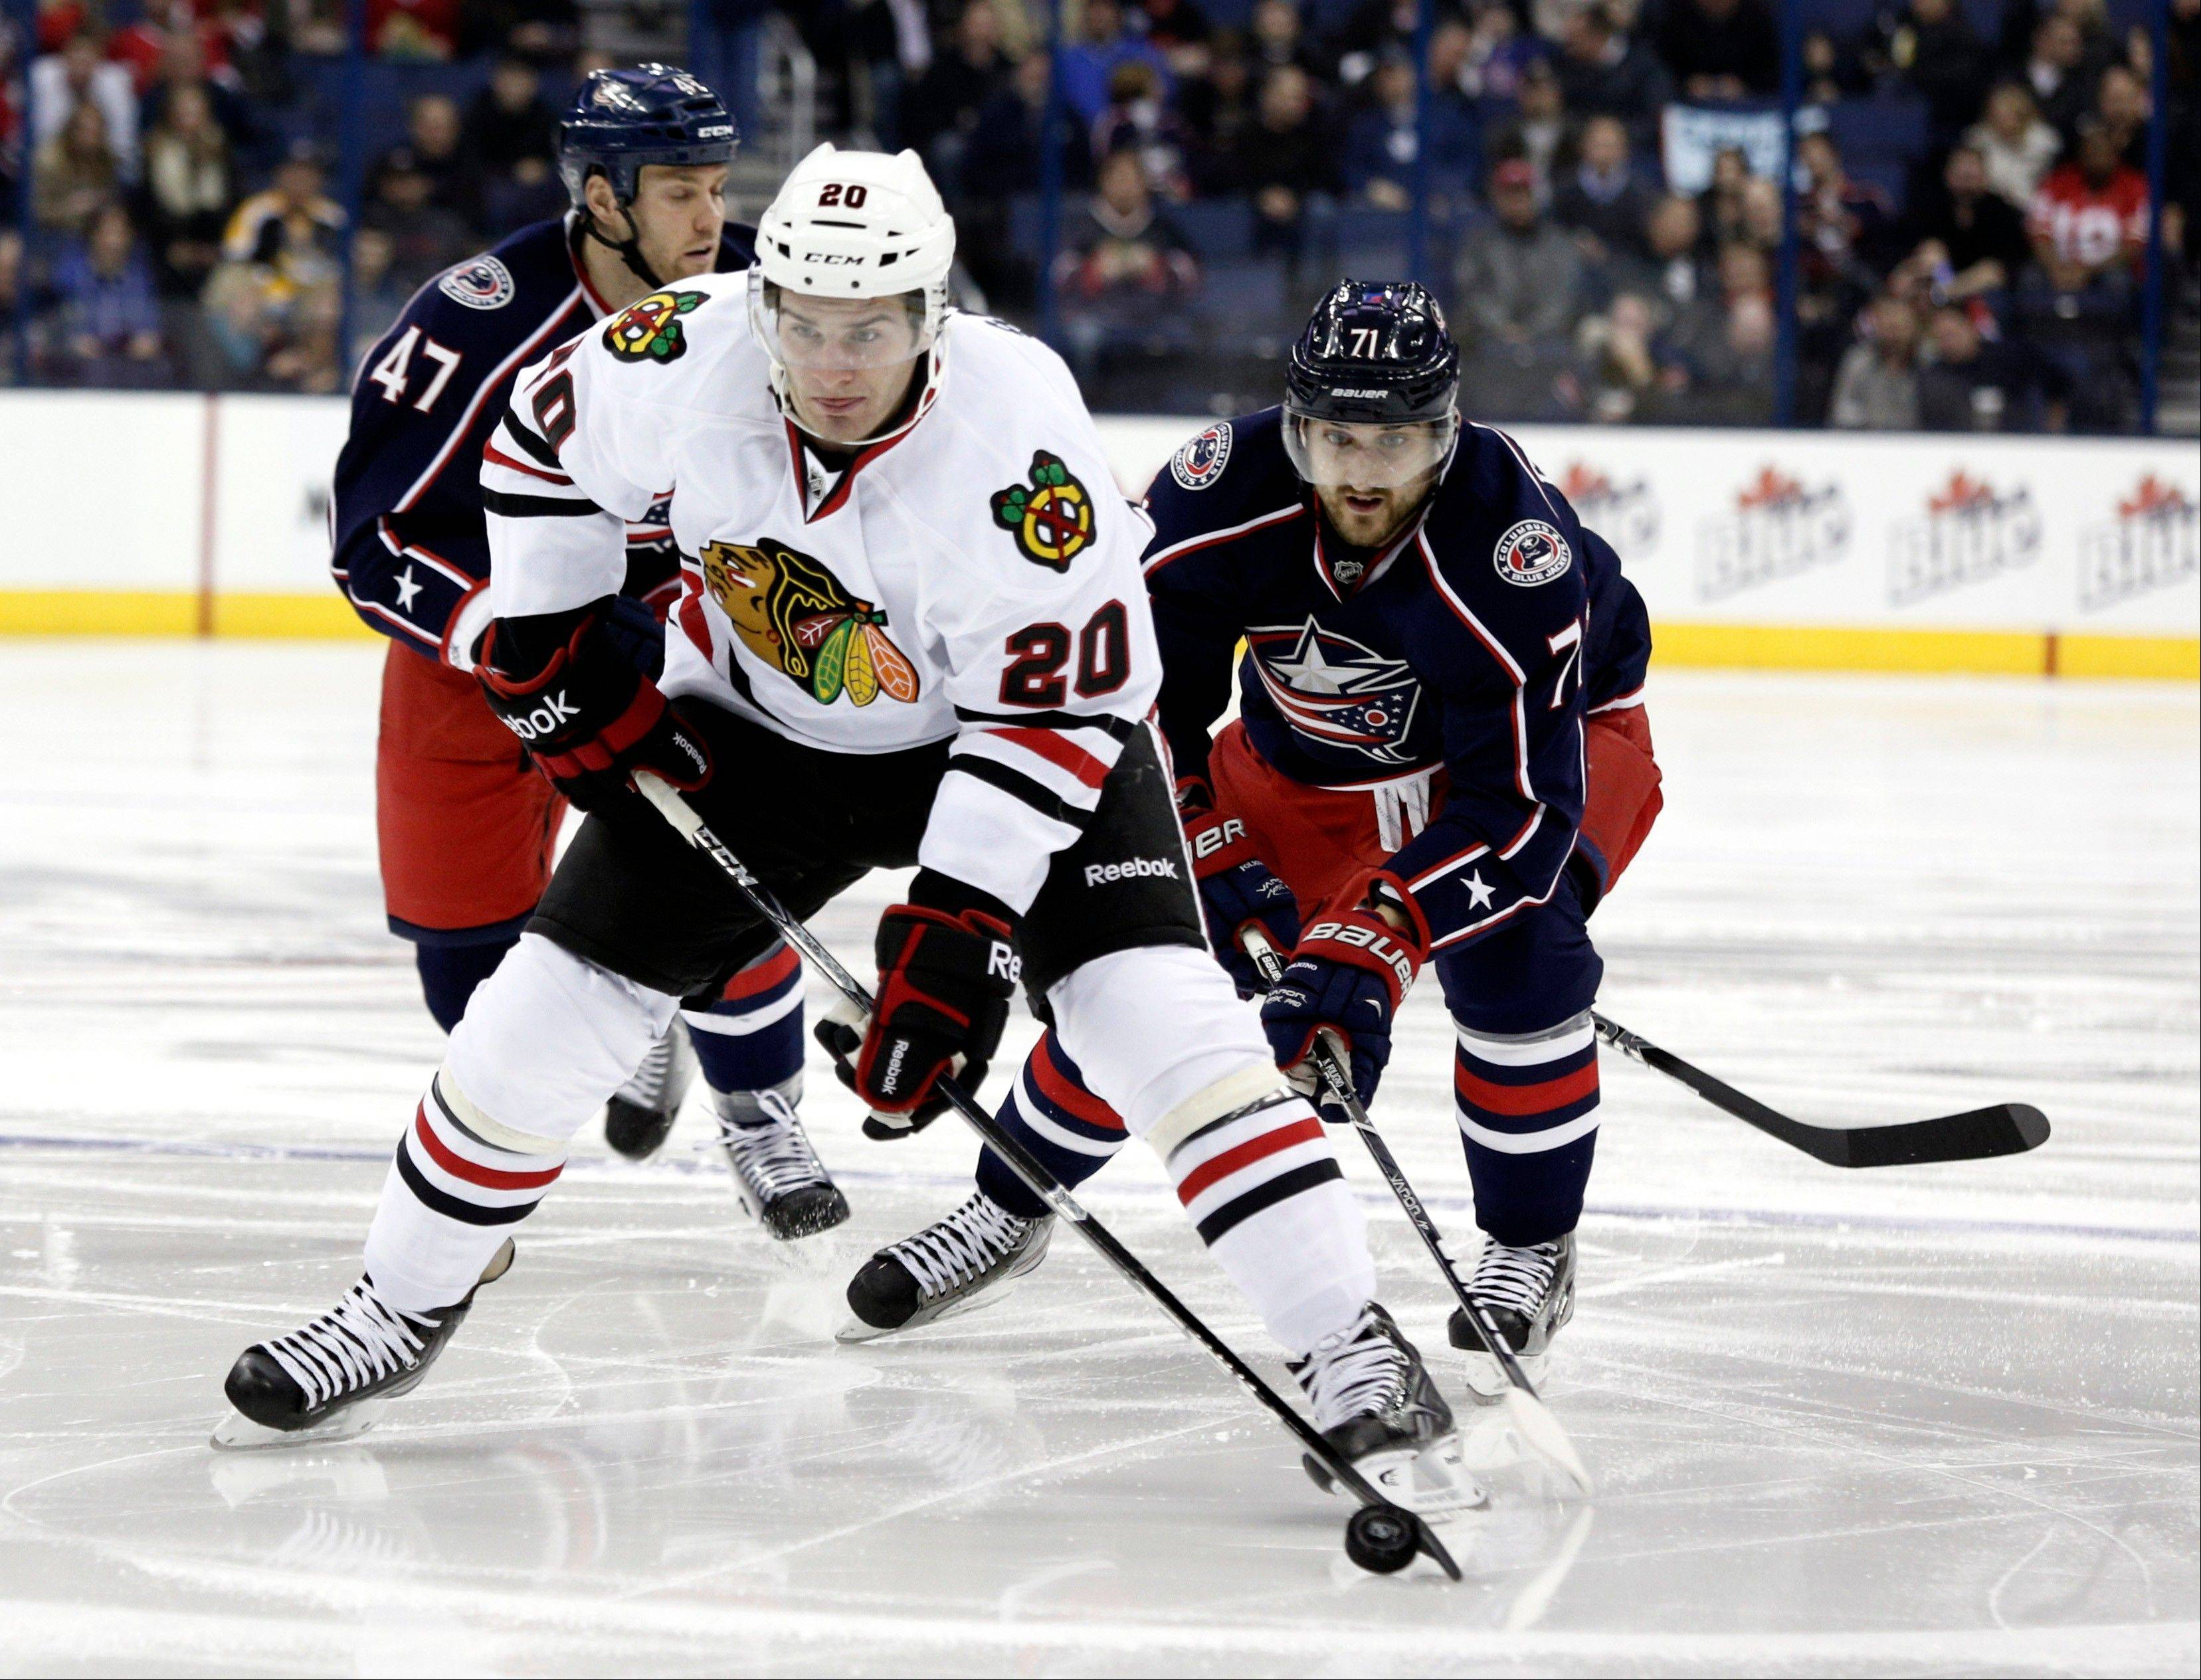 Chicago Blackhawks' Brandon Saad (20) carries the puck against Columbus Blue Jackets' Dalton Prout (47) and Nick Foligno (71) during the first period.